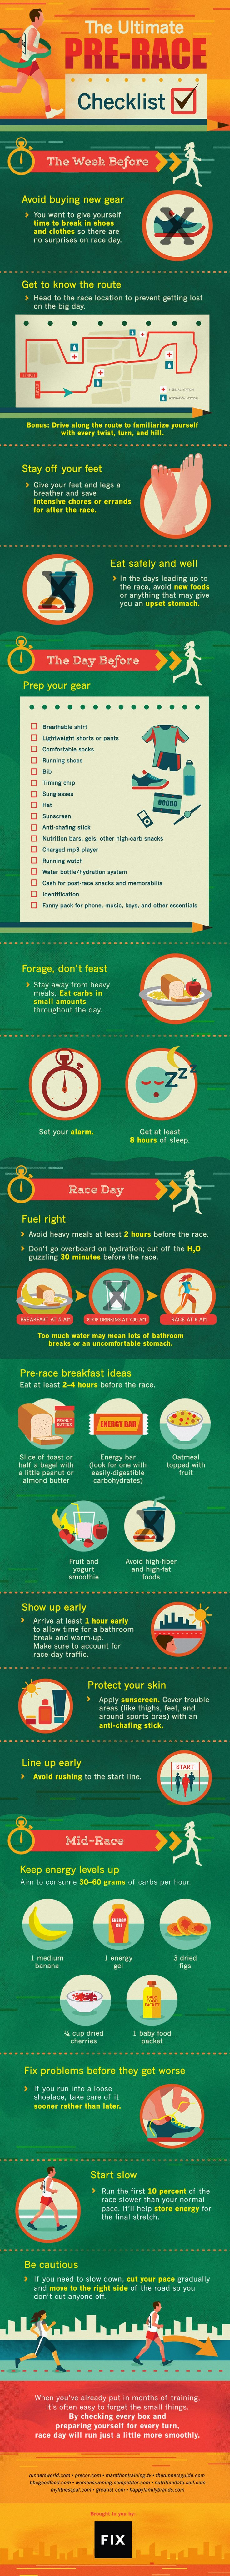 The Ultimate Pre-Race Checklist Infographic